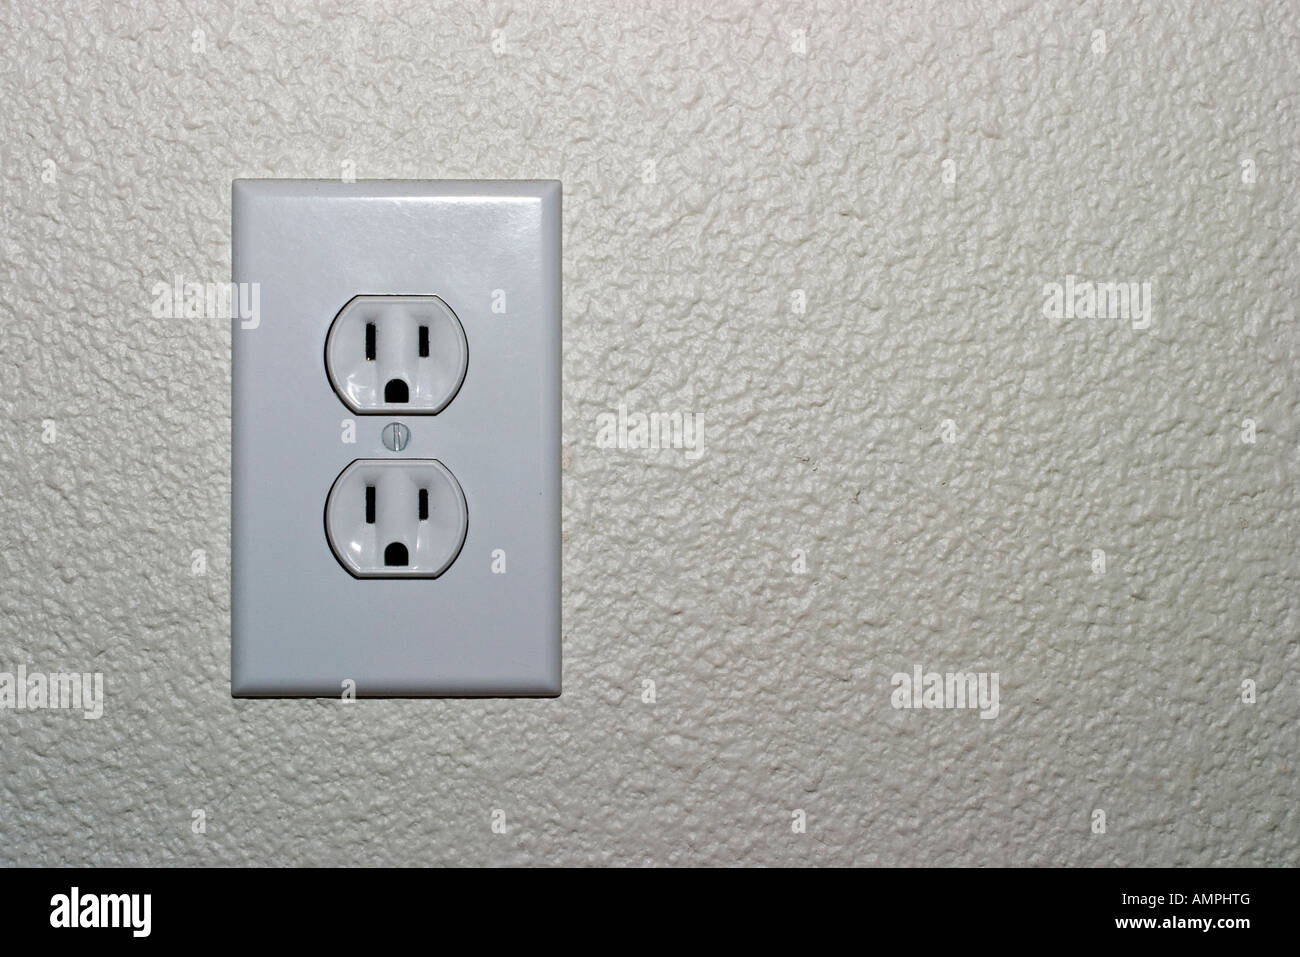 American electrical outlet Stock Photo: 15315951 - Alamy